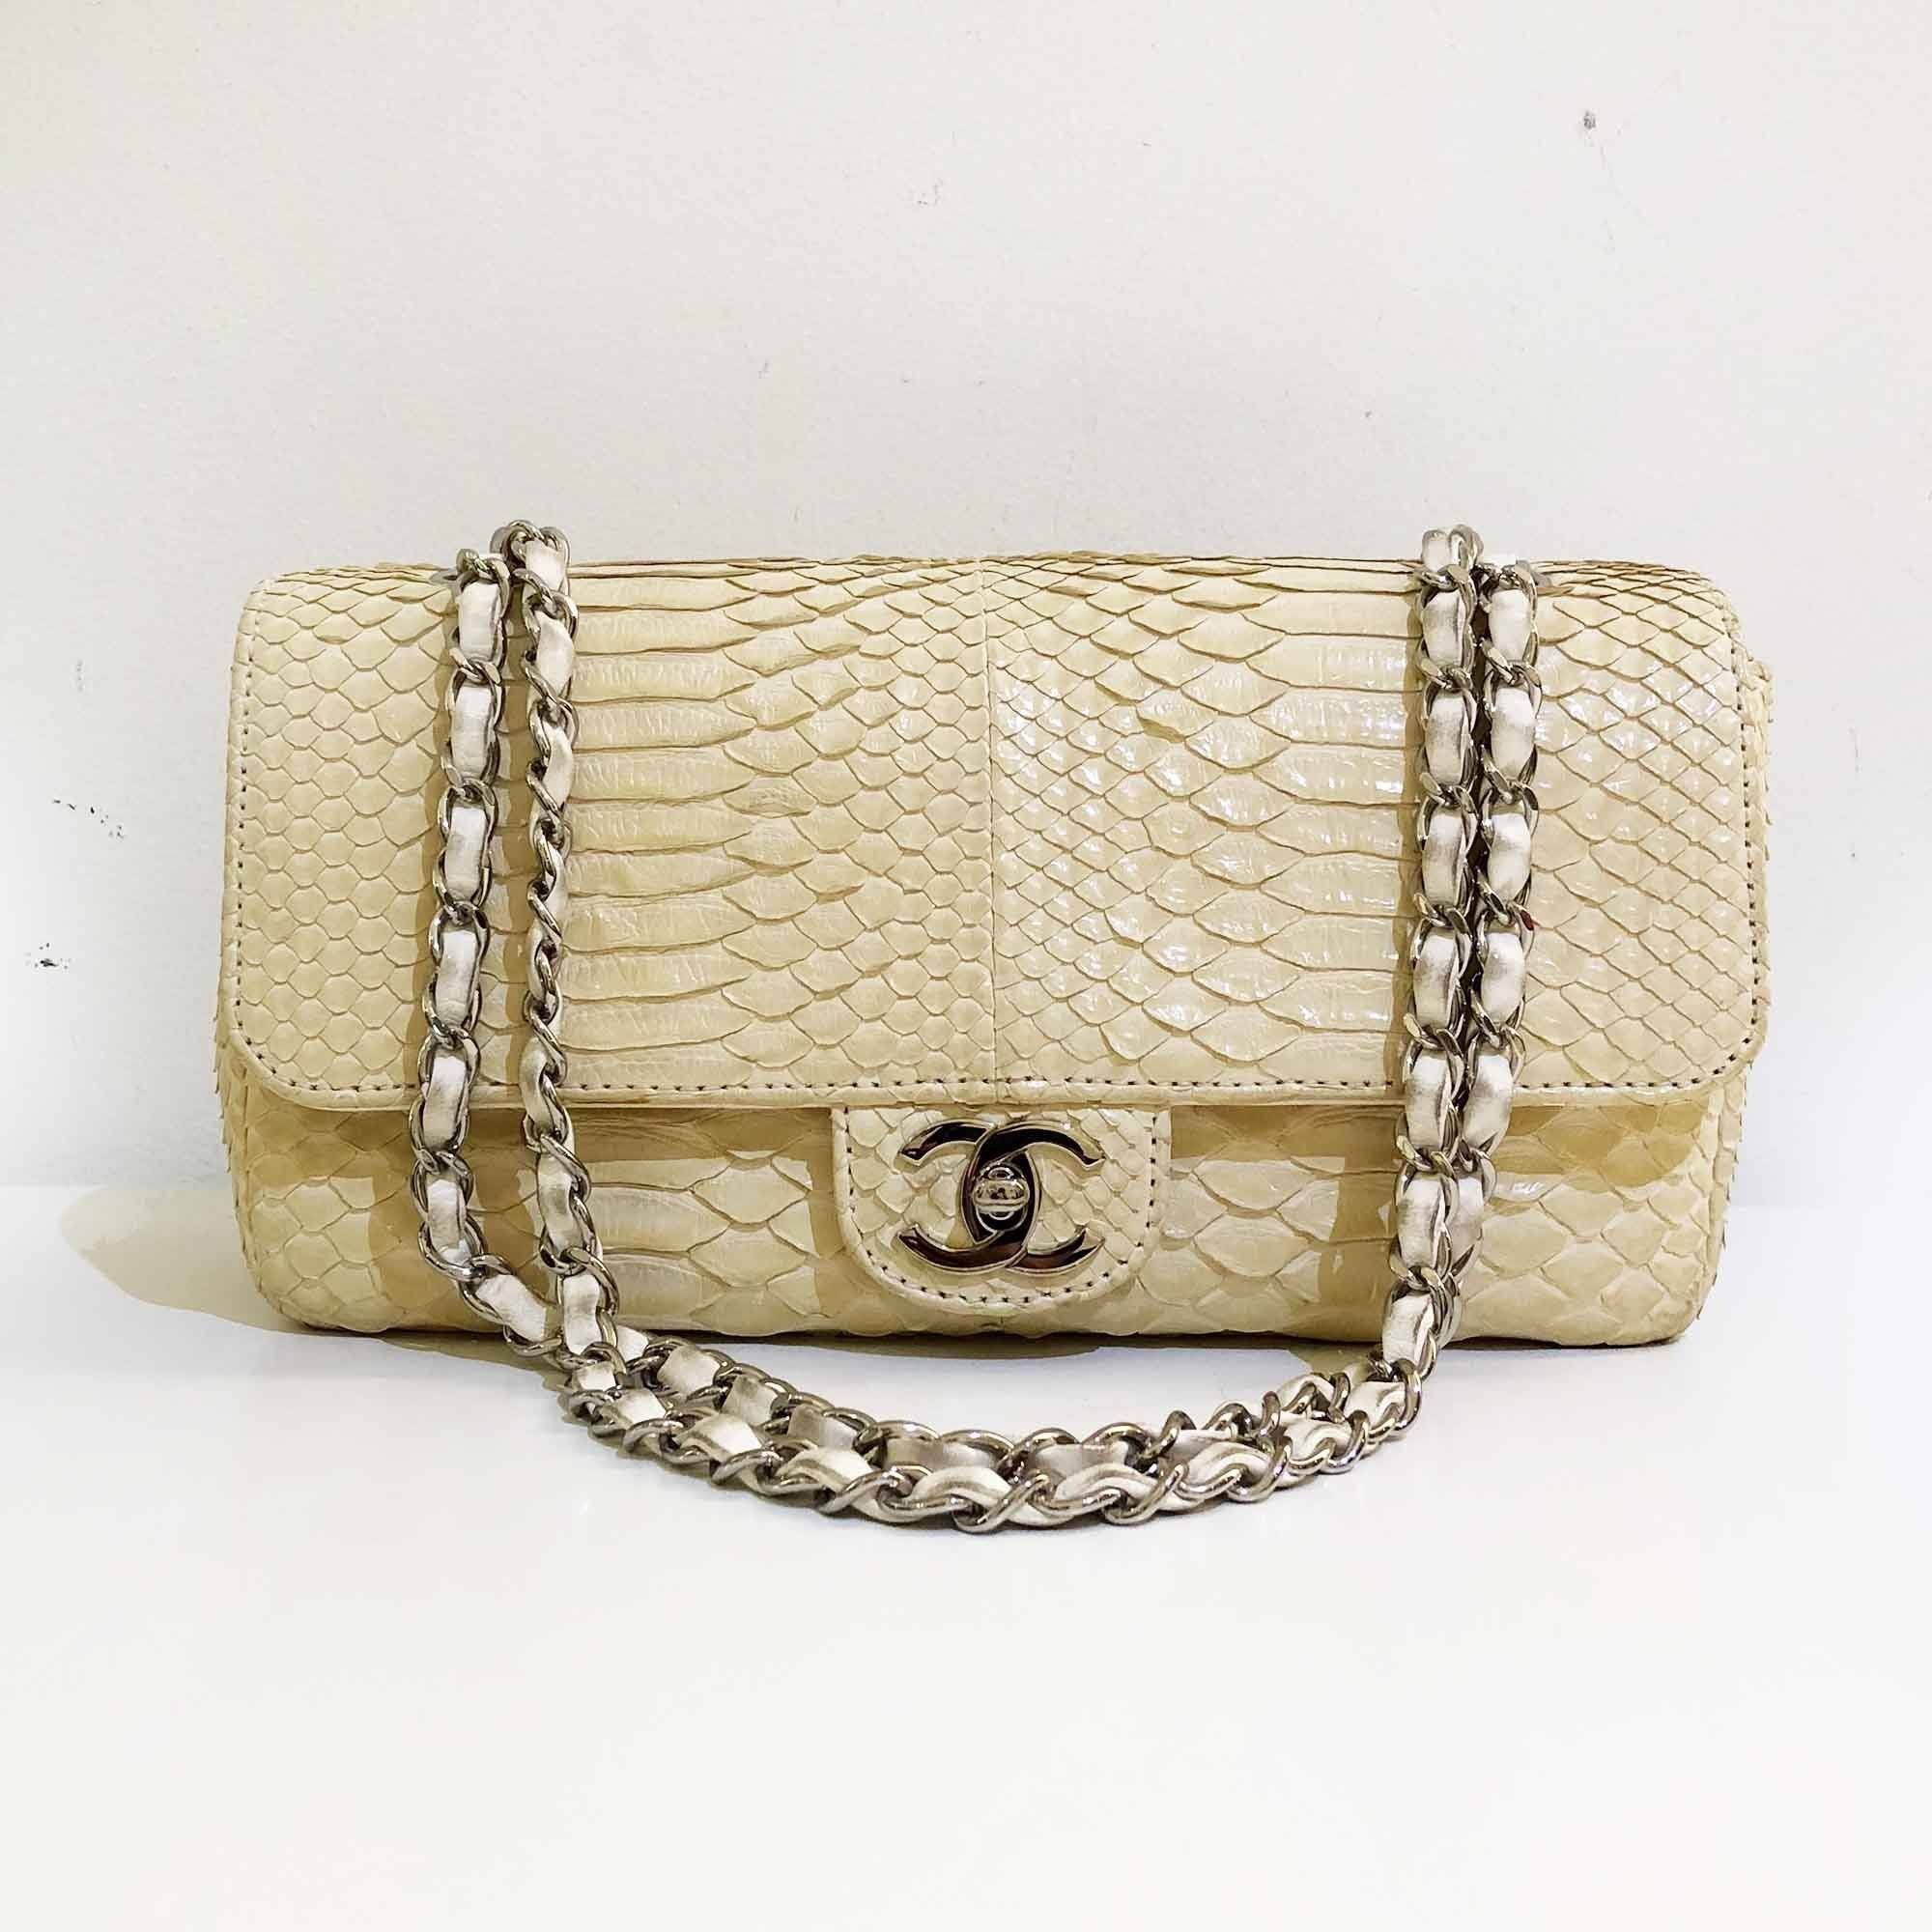 Chanel Timeless Python Single Flap Bag